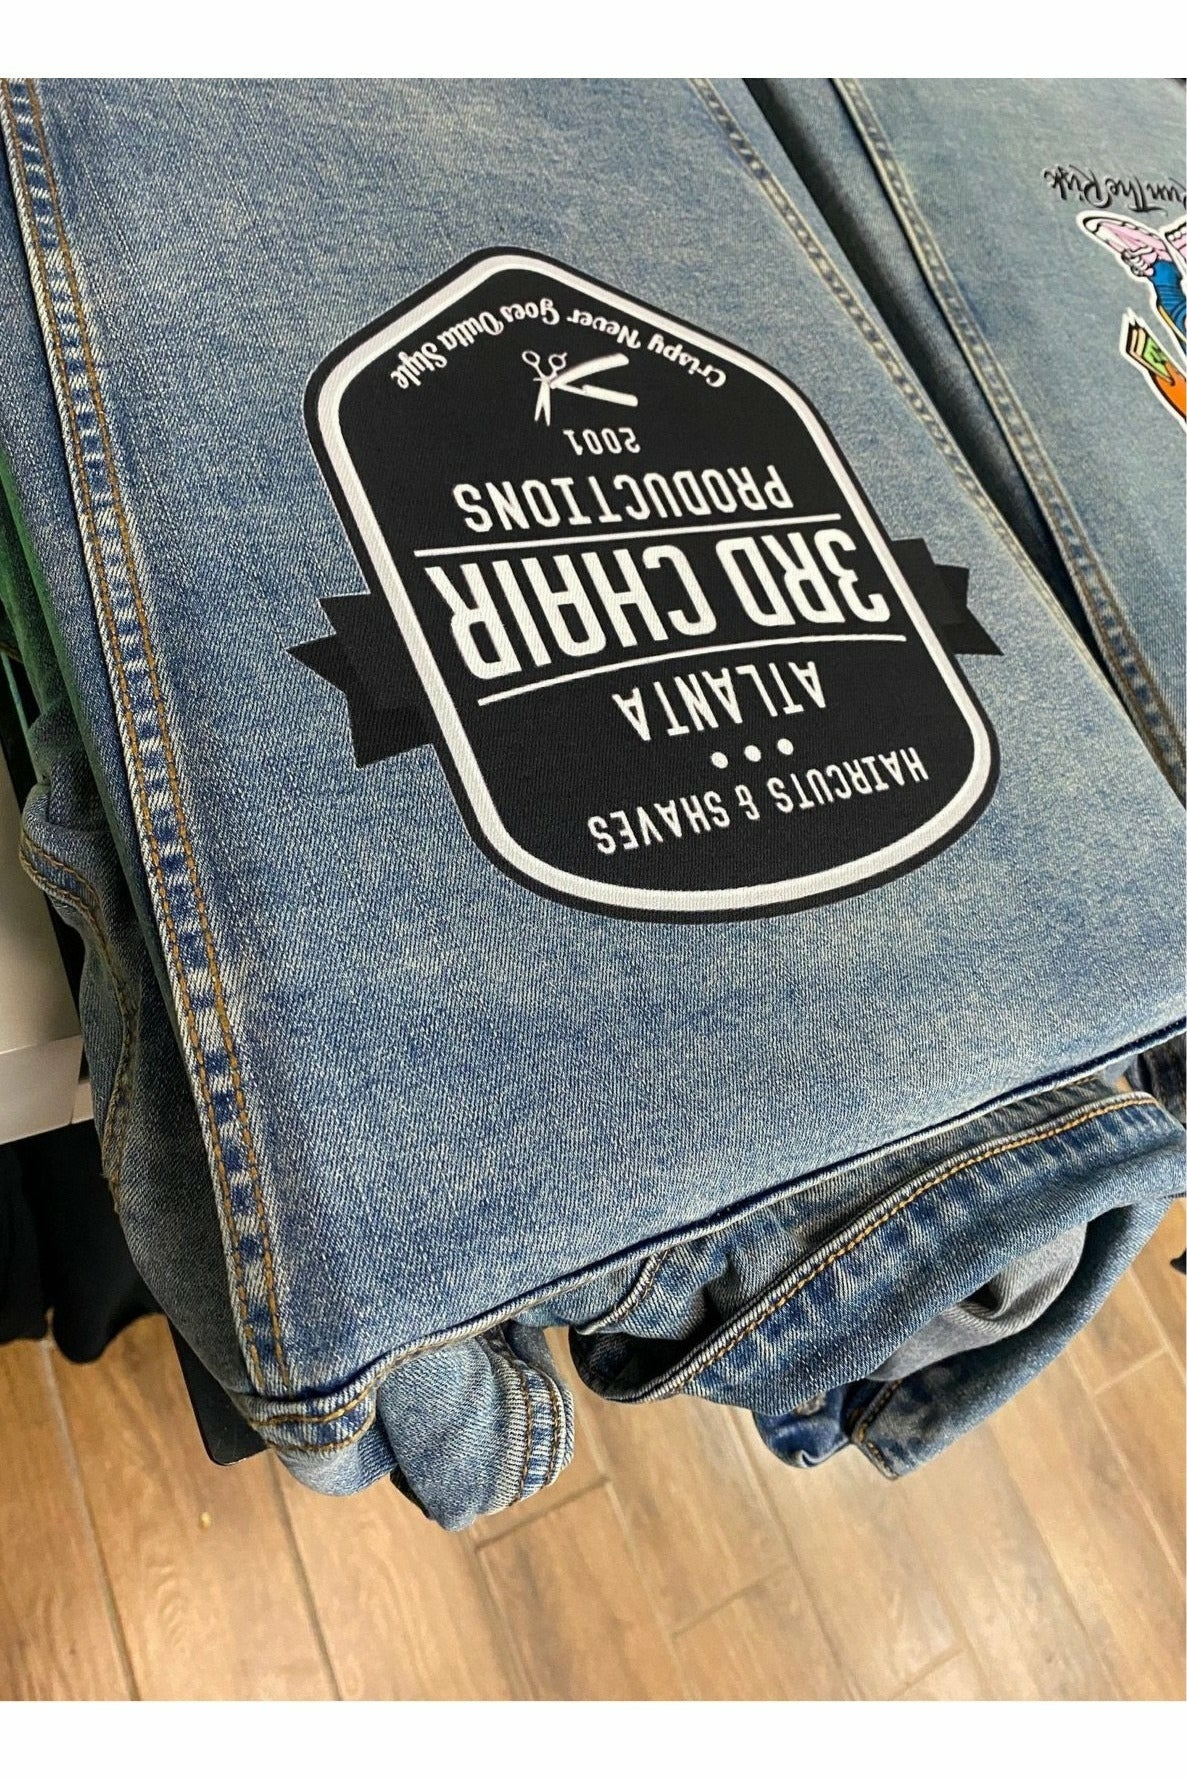 Denim Jacket Sample- Full Color DTG